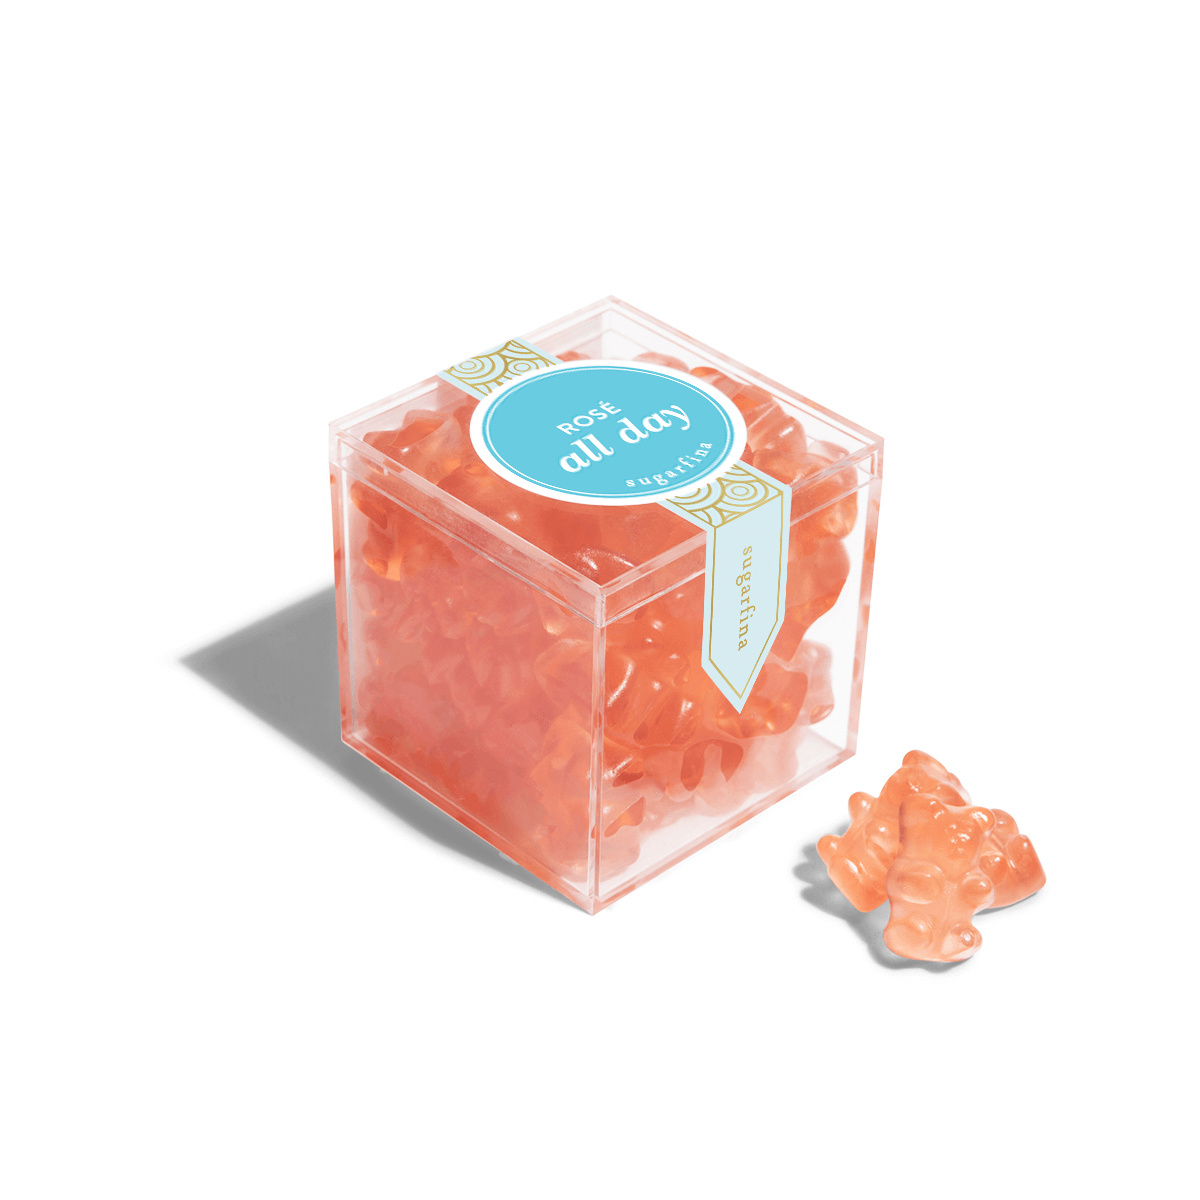 Sugarfina Sugarfina Rosé All Day Bears Small Cube